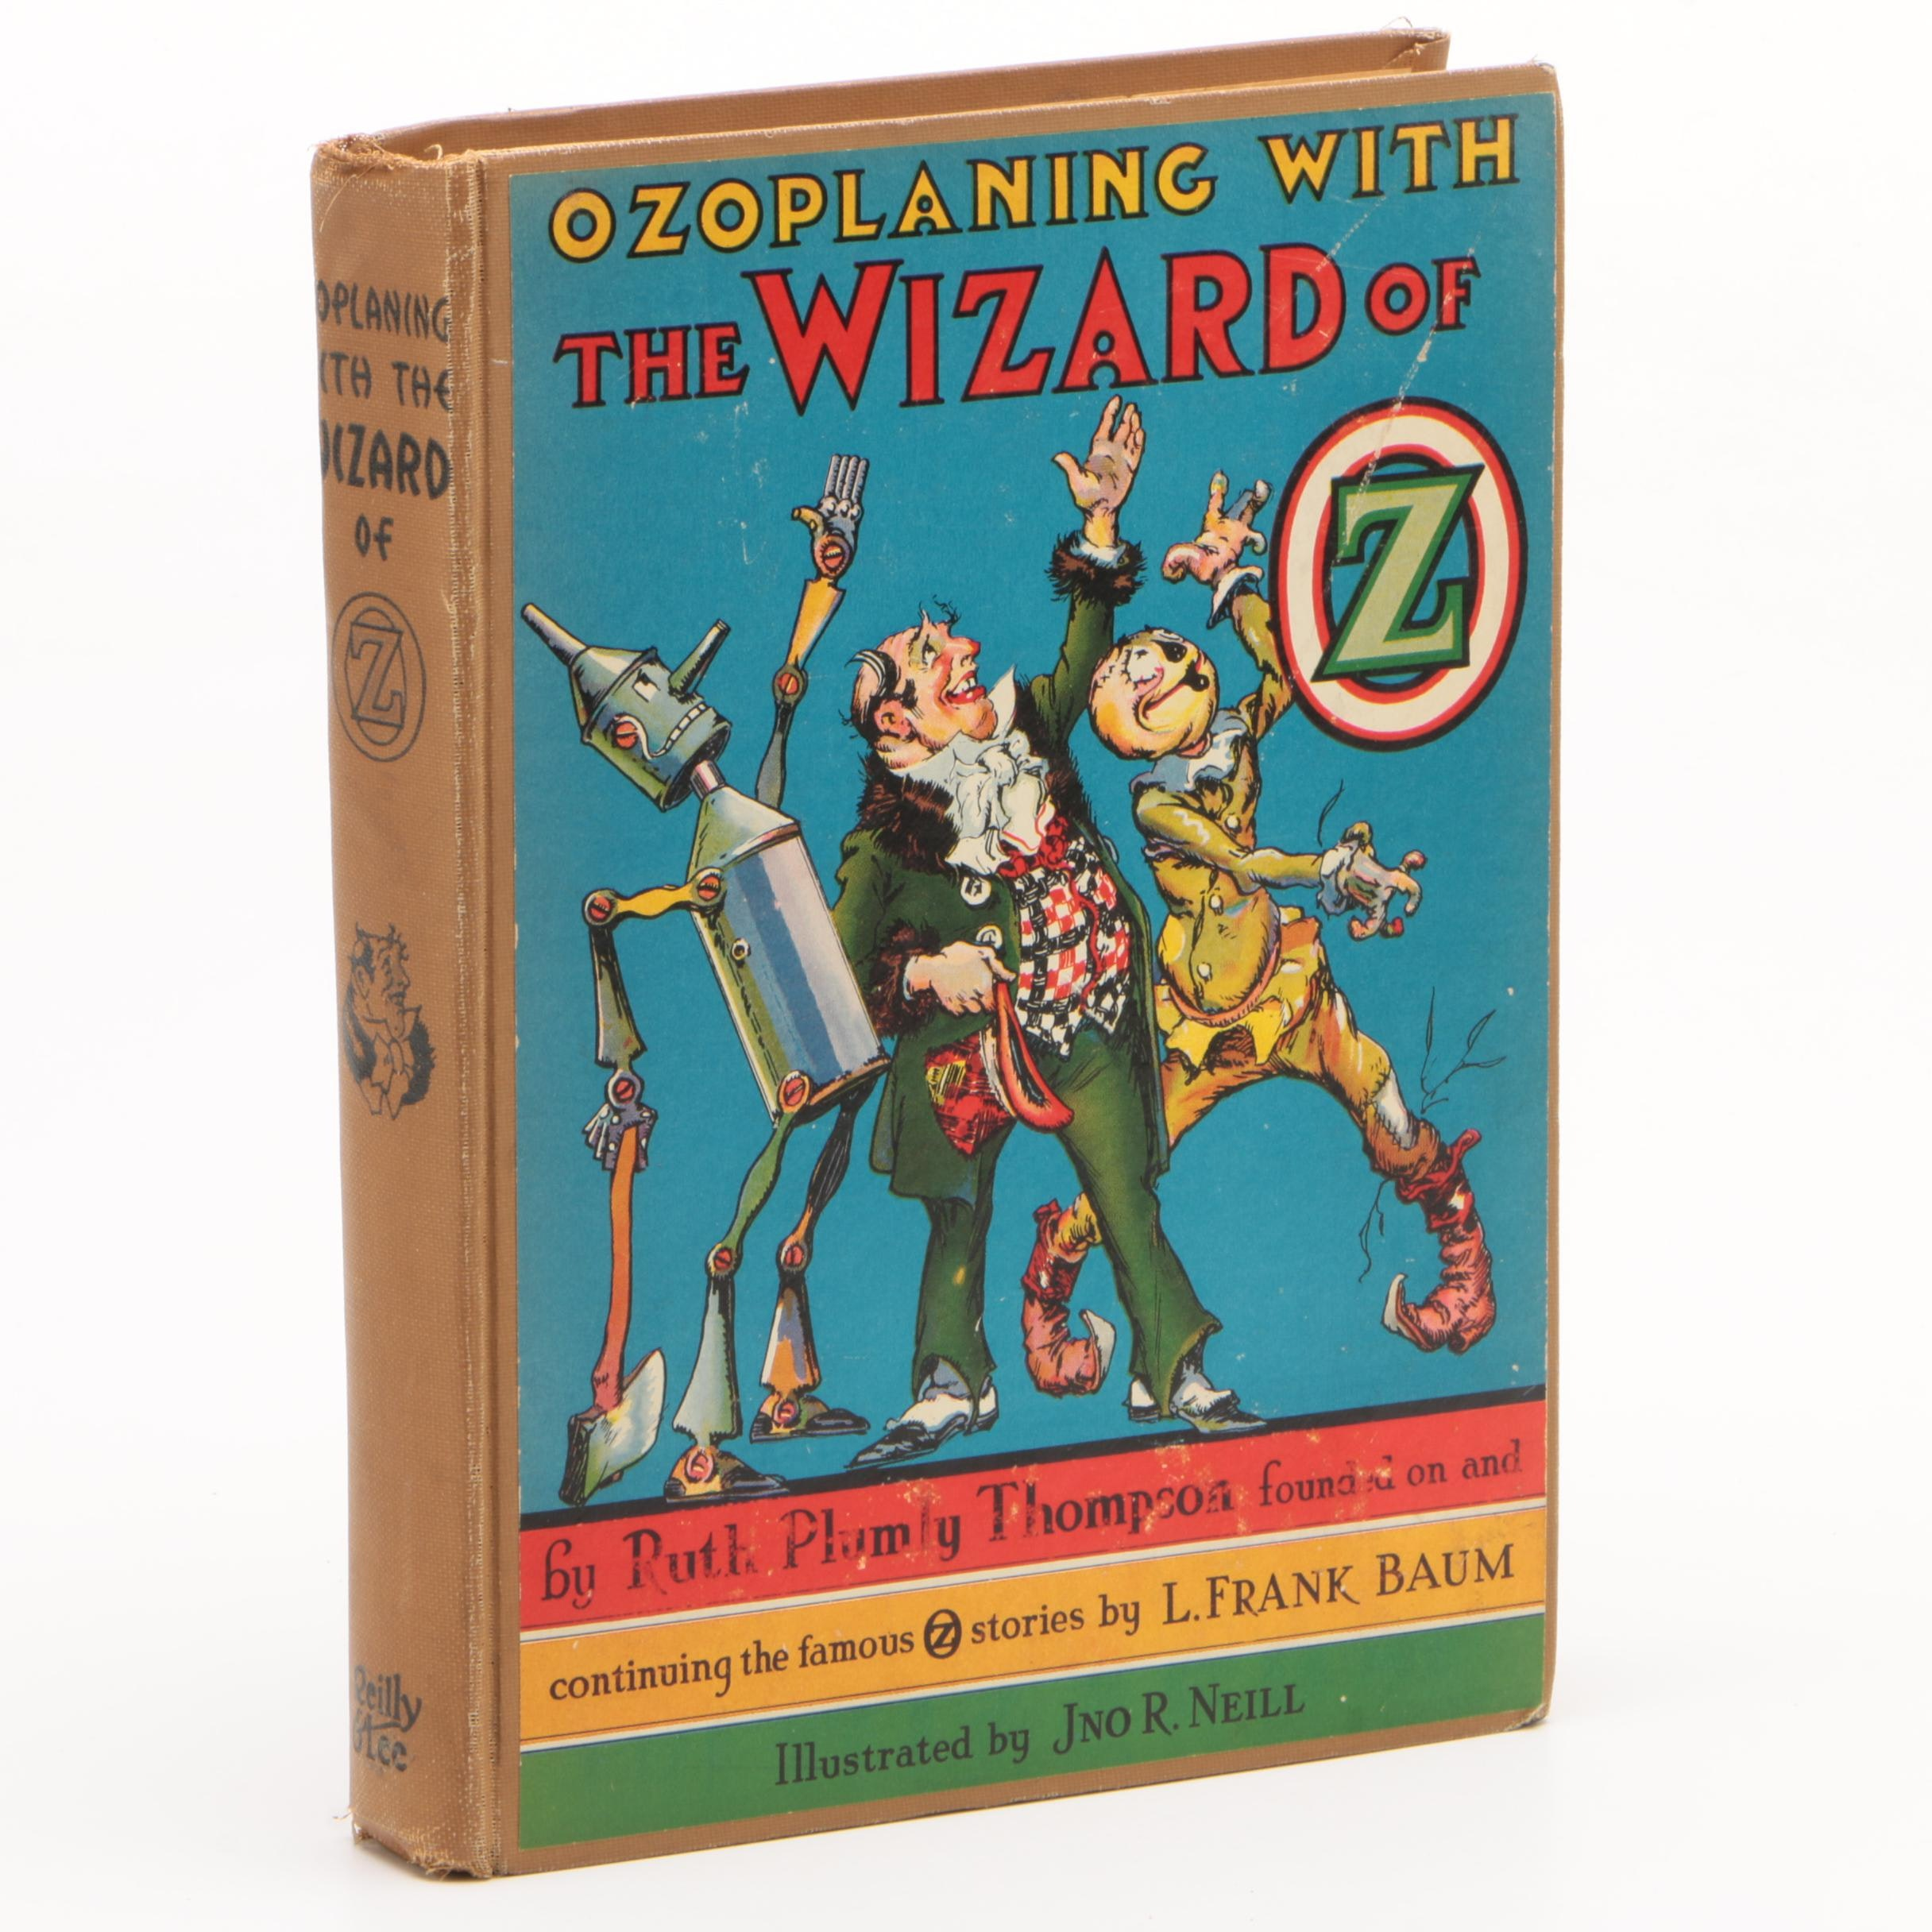 """1939 First Printing """"Ozoplaning with the Wizard of Oz"""" by Ruth Plumly Thompson"""